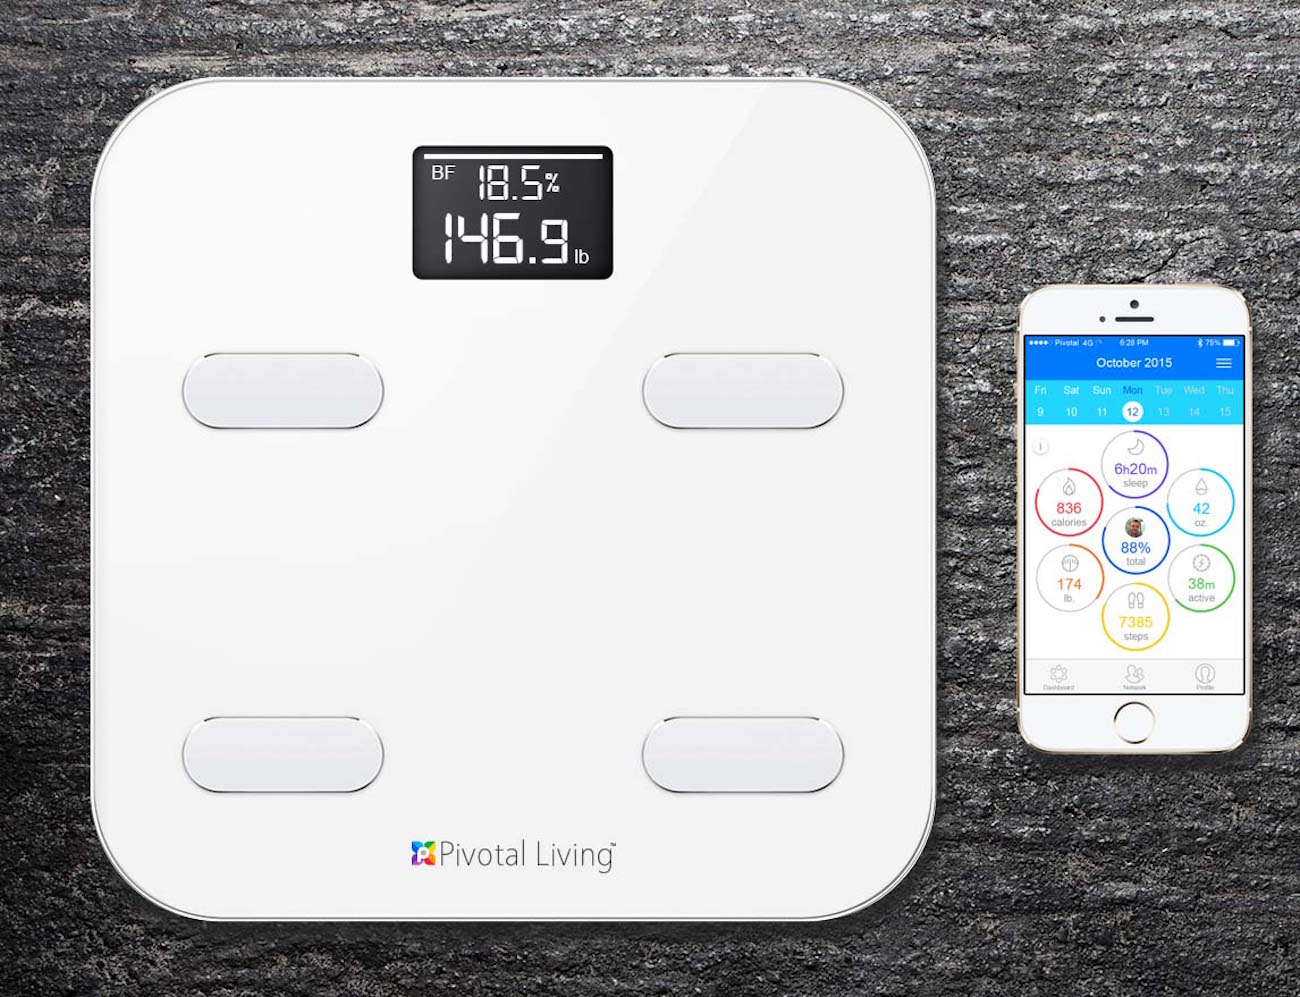 Pivotal Living Bluetooth Smart Scale